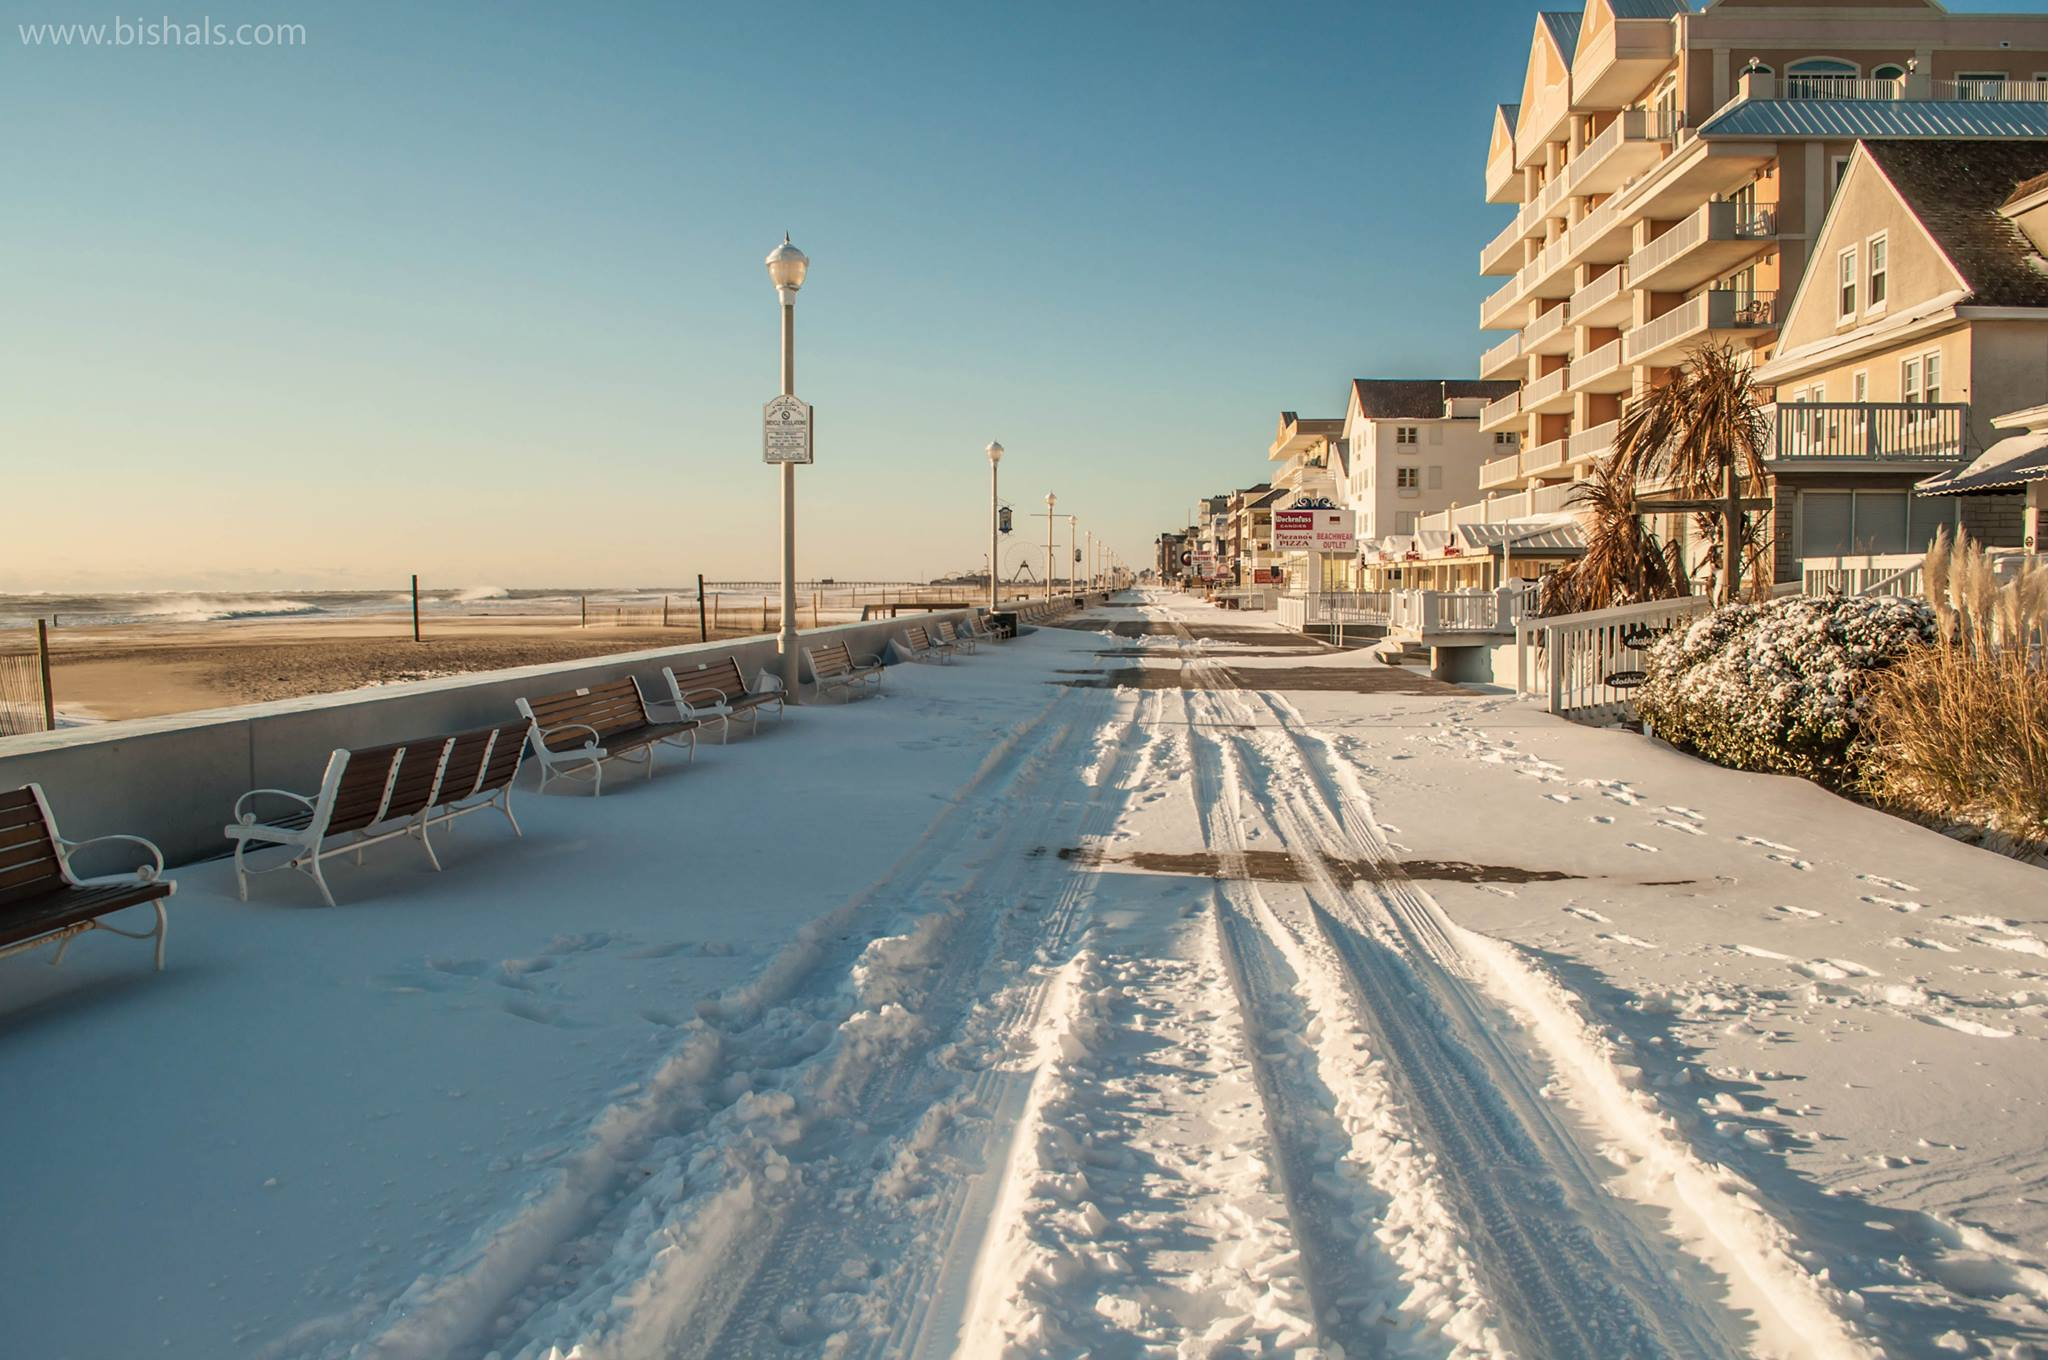 01 22 2014 Ocean City Area Digs Out From Smaller Snowfall Than Expected News Ocean City Md